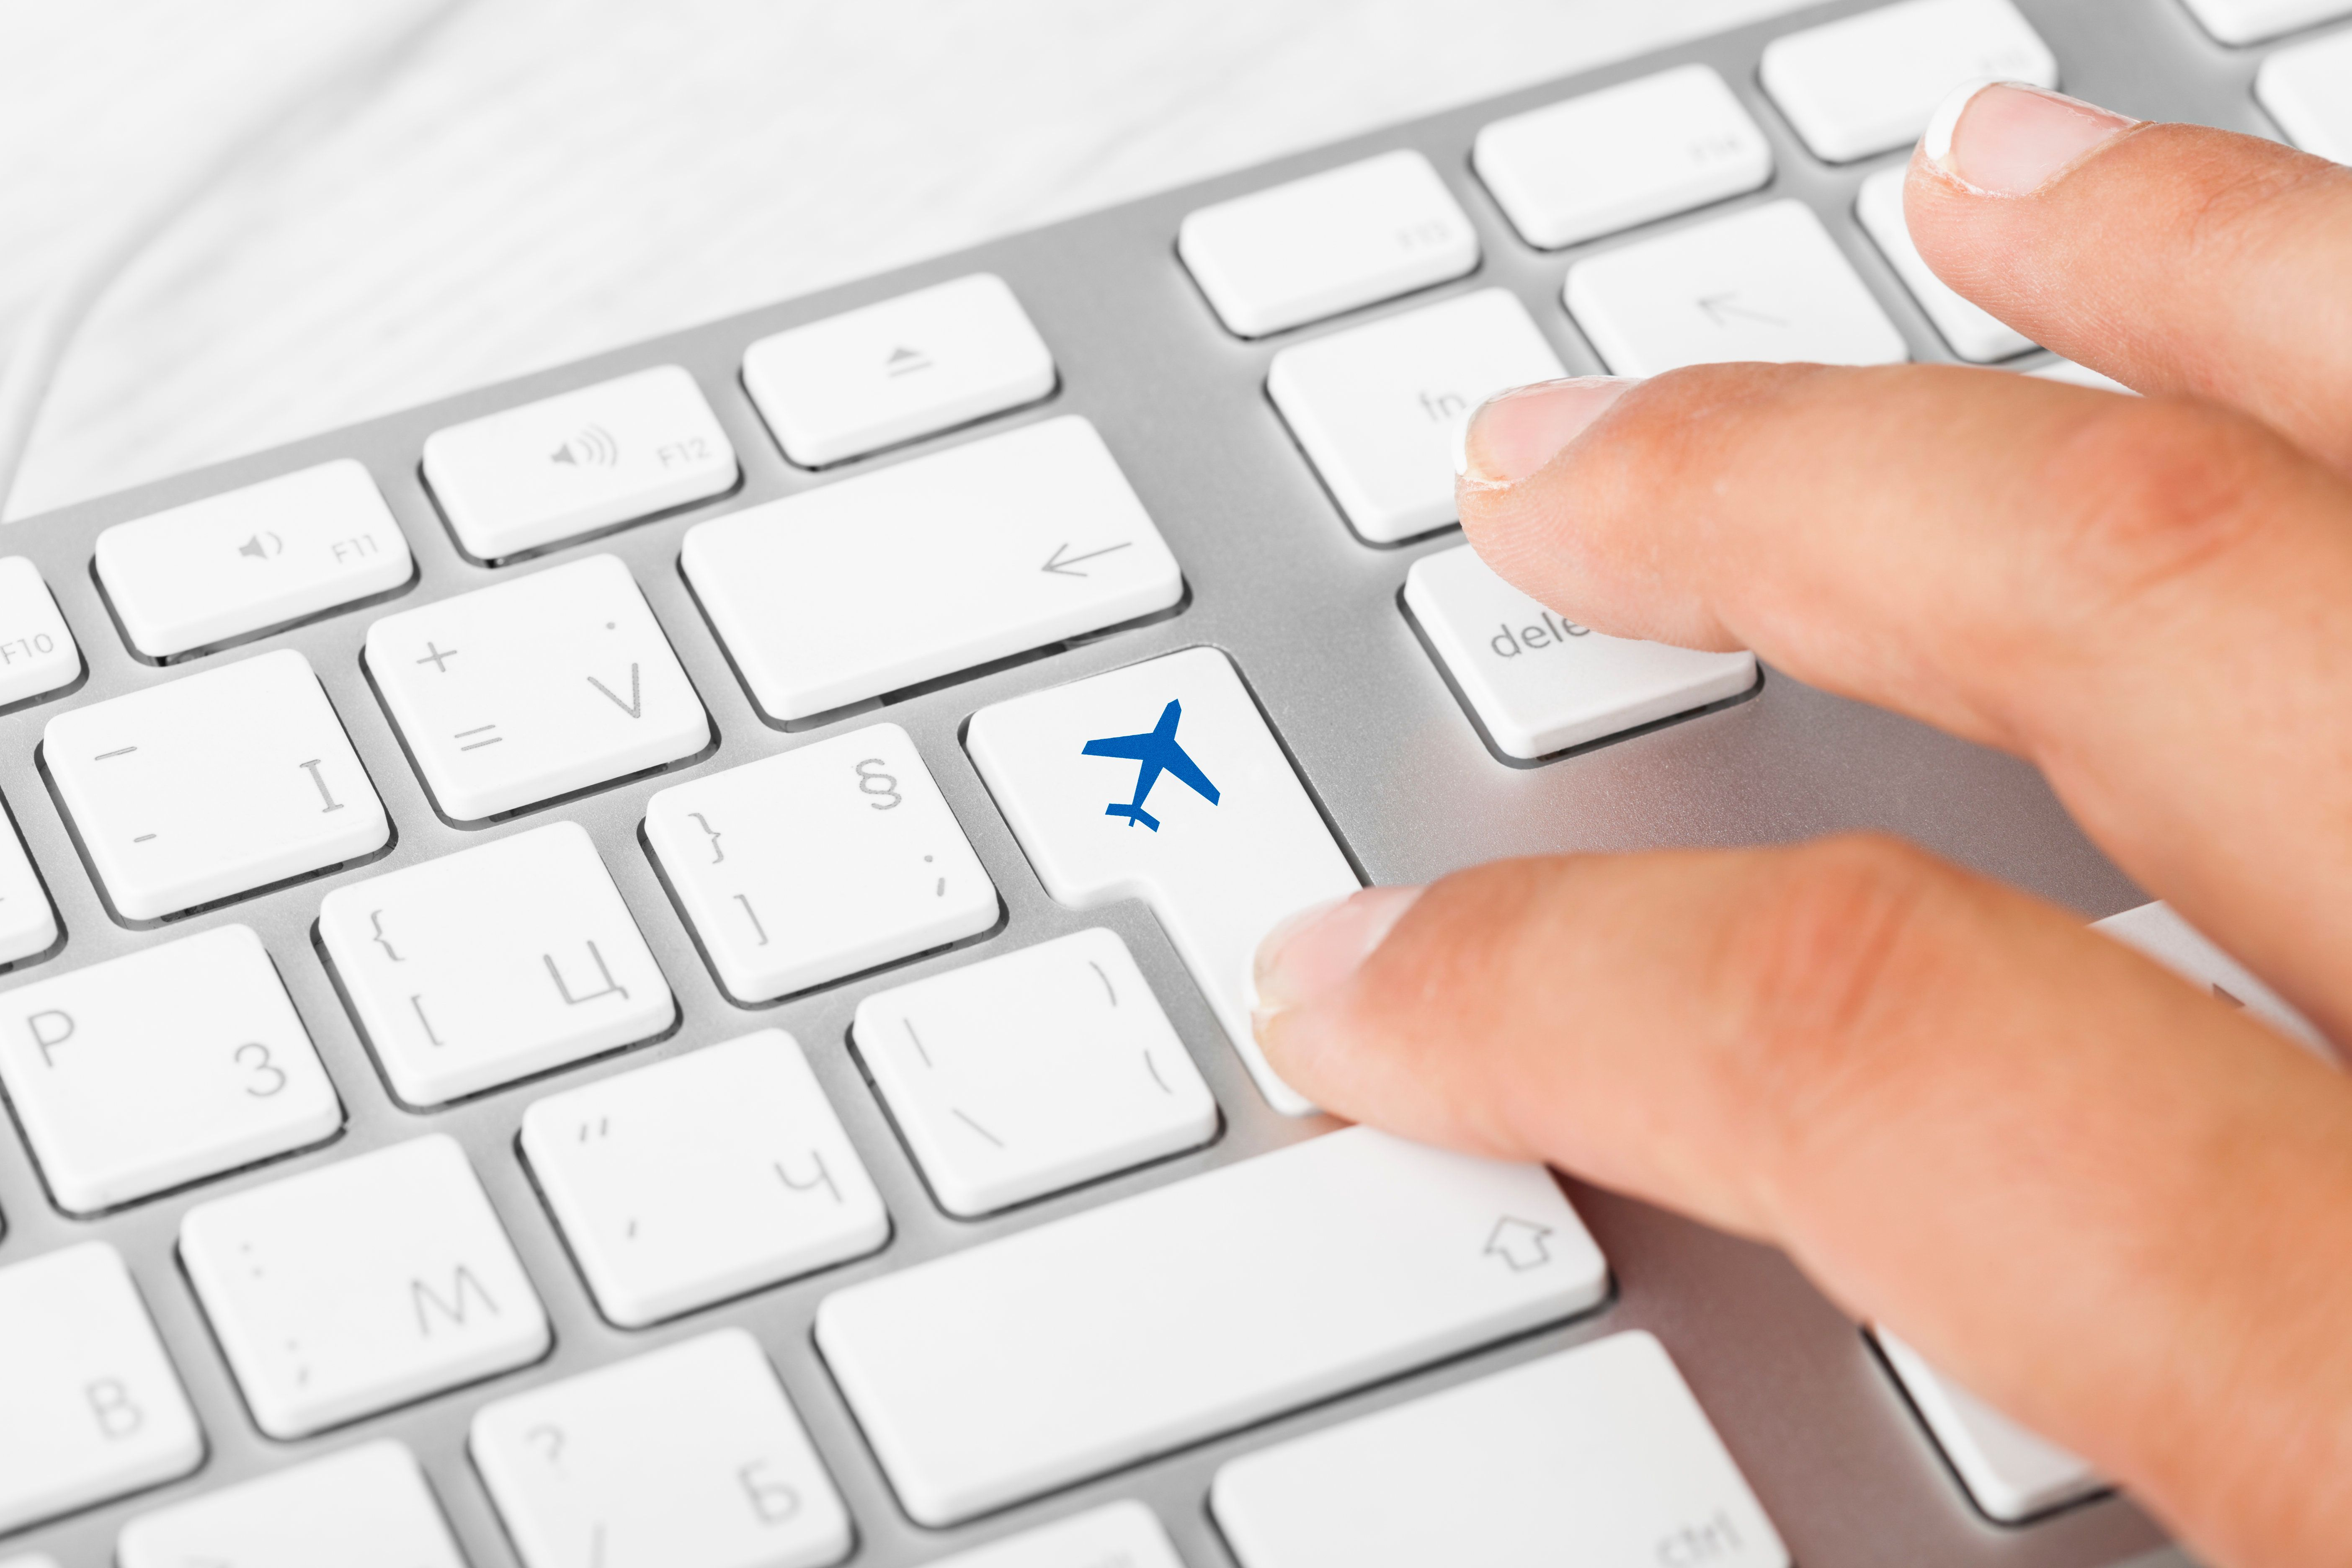 Plane Key On Computer Keyboard